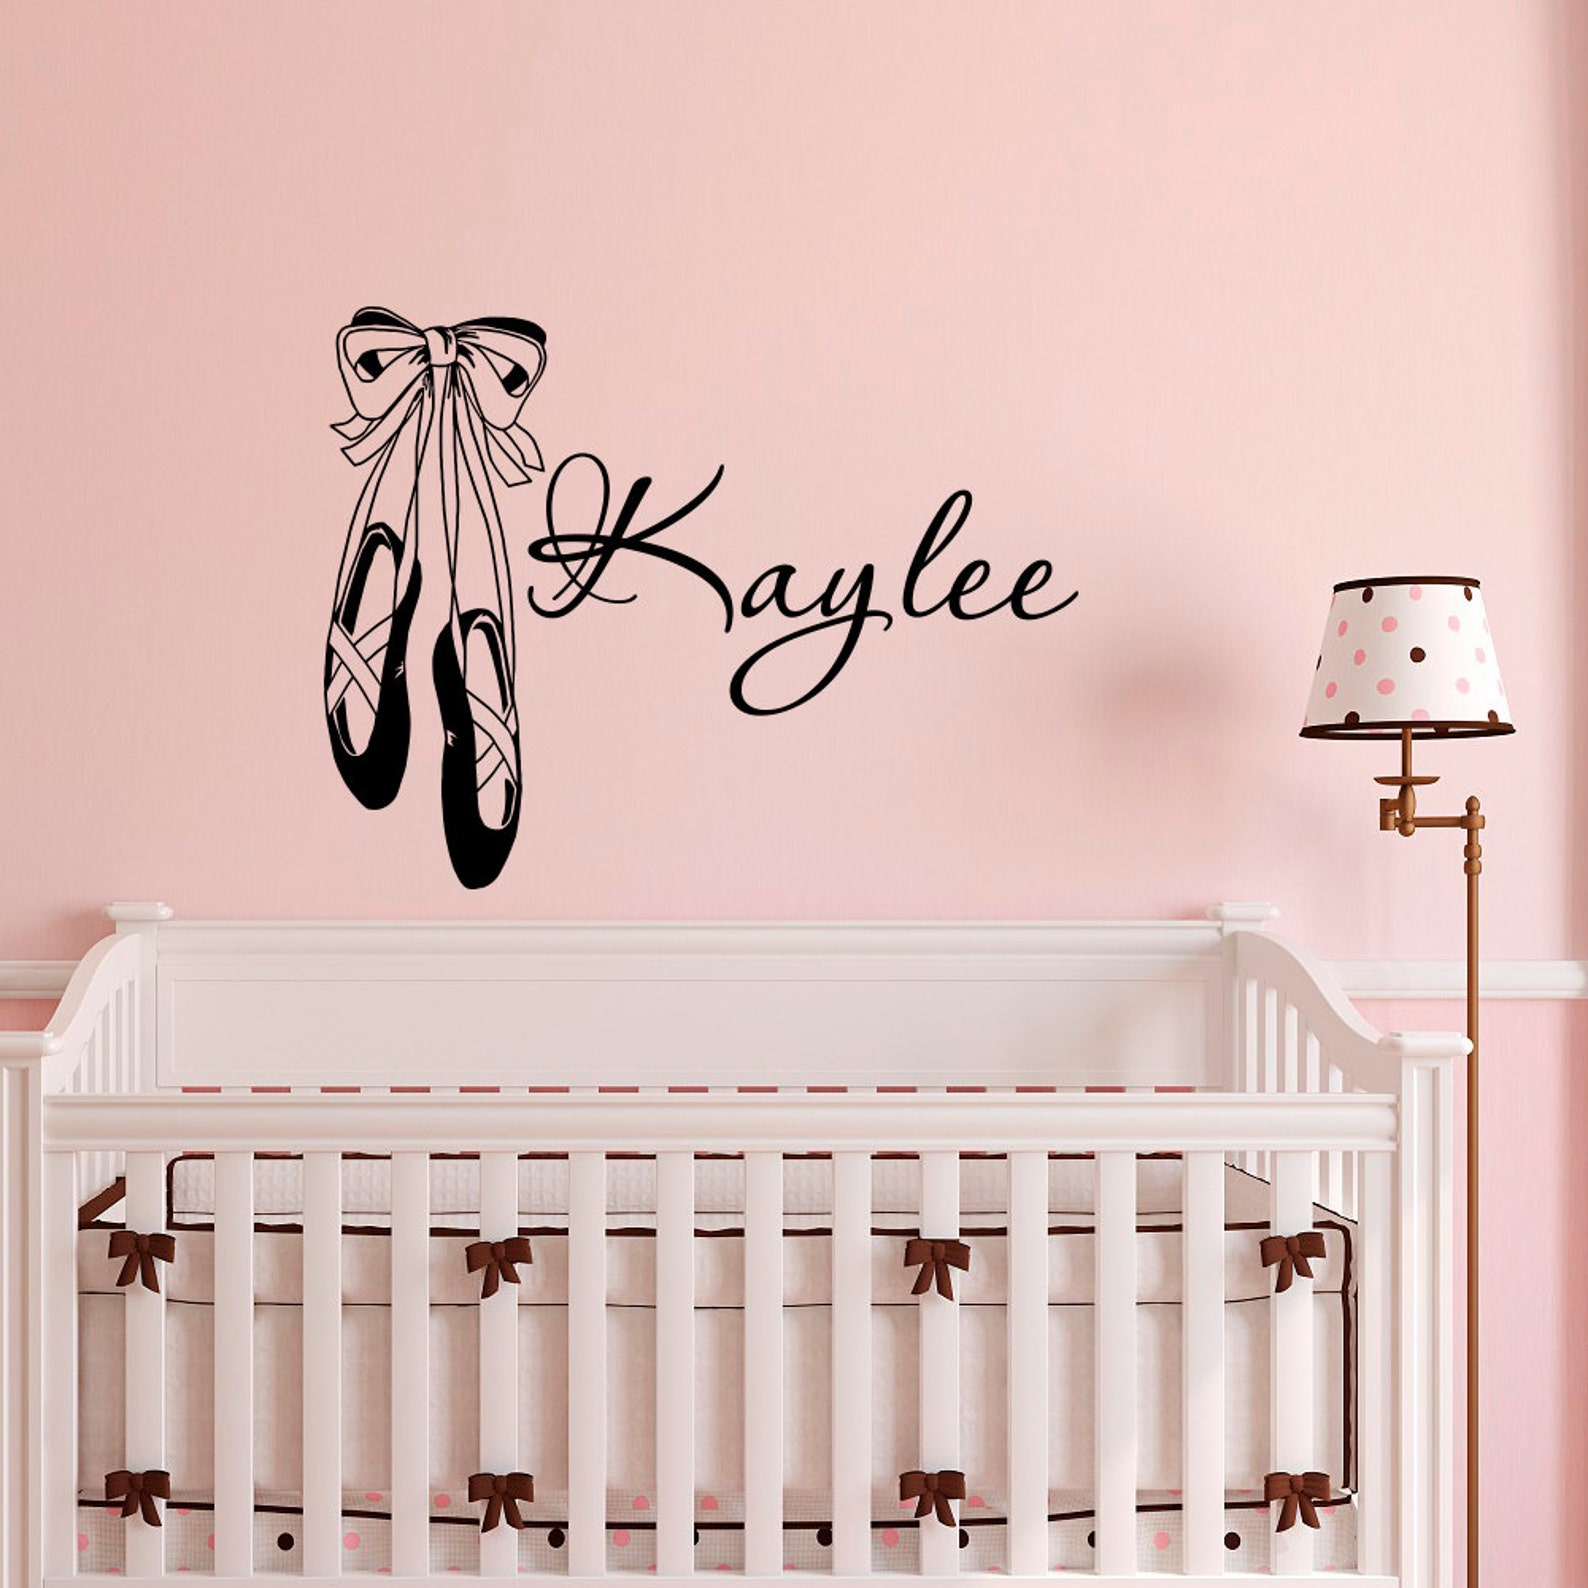 personalized wall decal- girls name wall decal stickers dance ballet studio ballerina girls bedroom dorm wall murals home decor